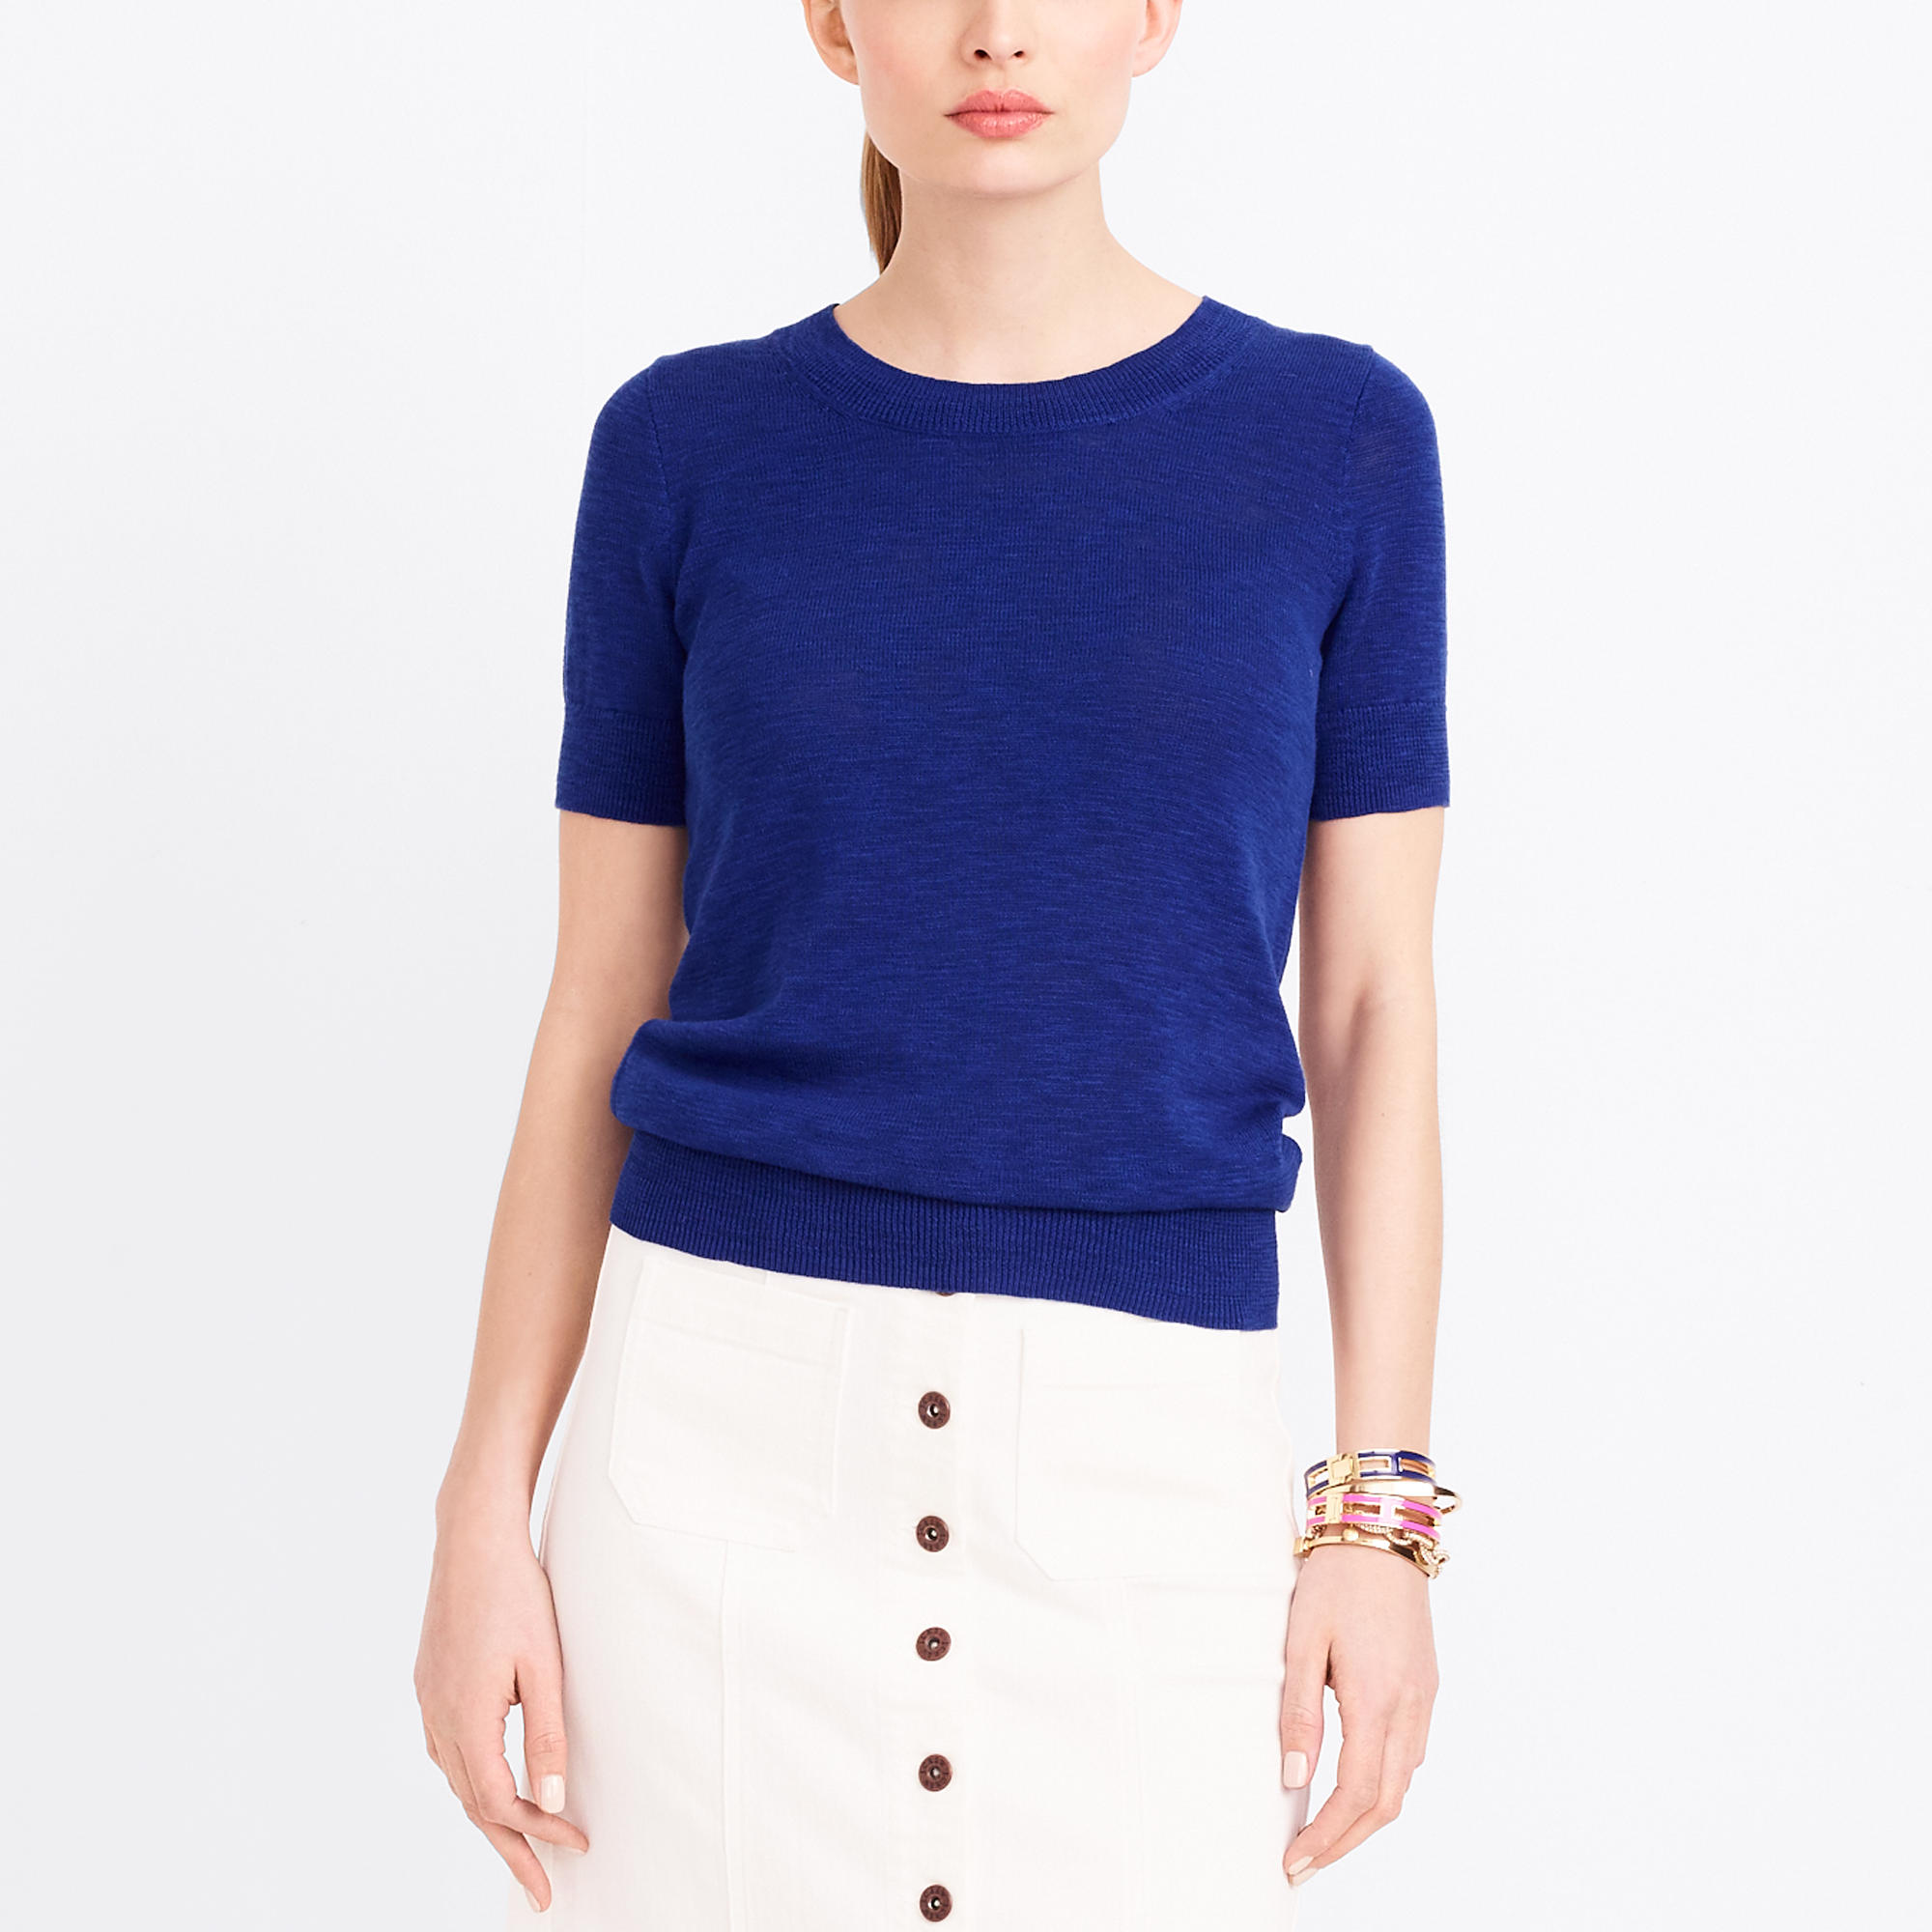 Short-sleeve sweater : FactoryWomen Pullovers | Factory